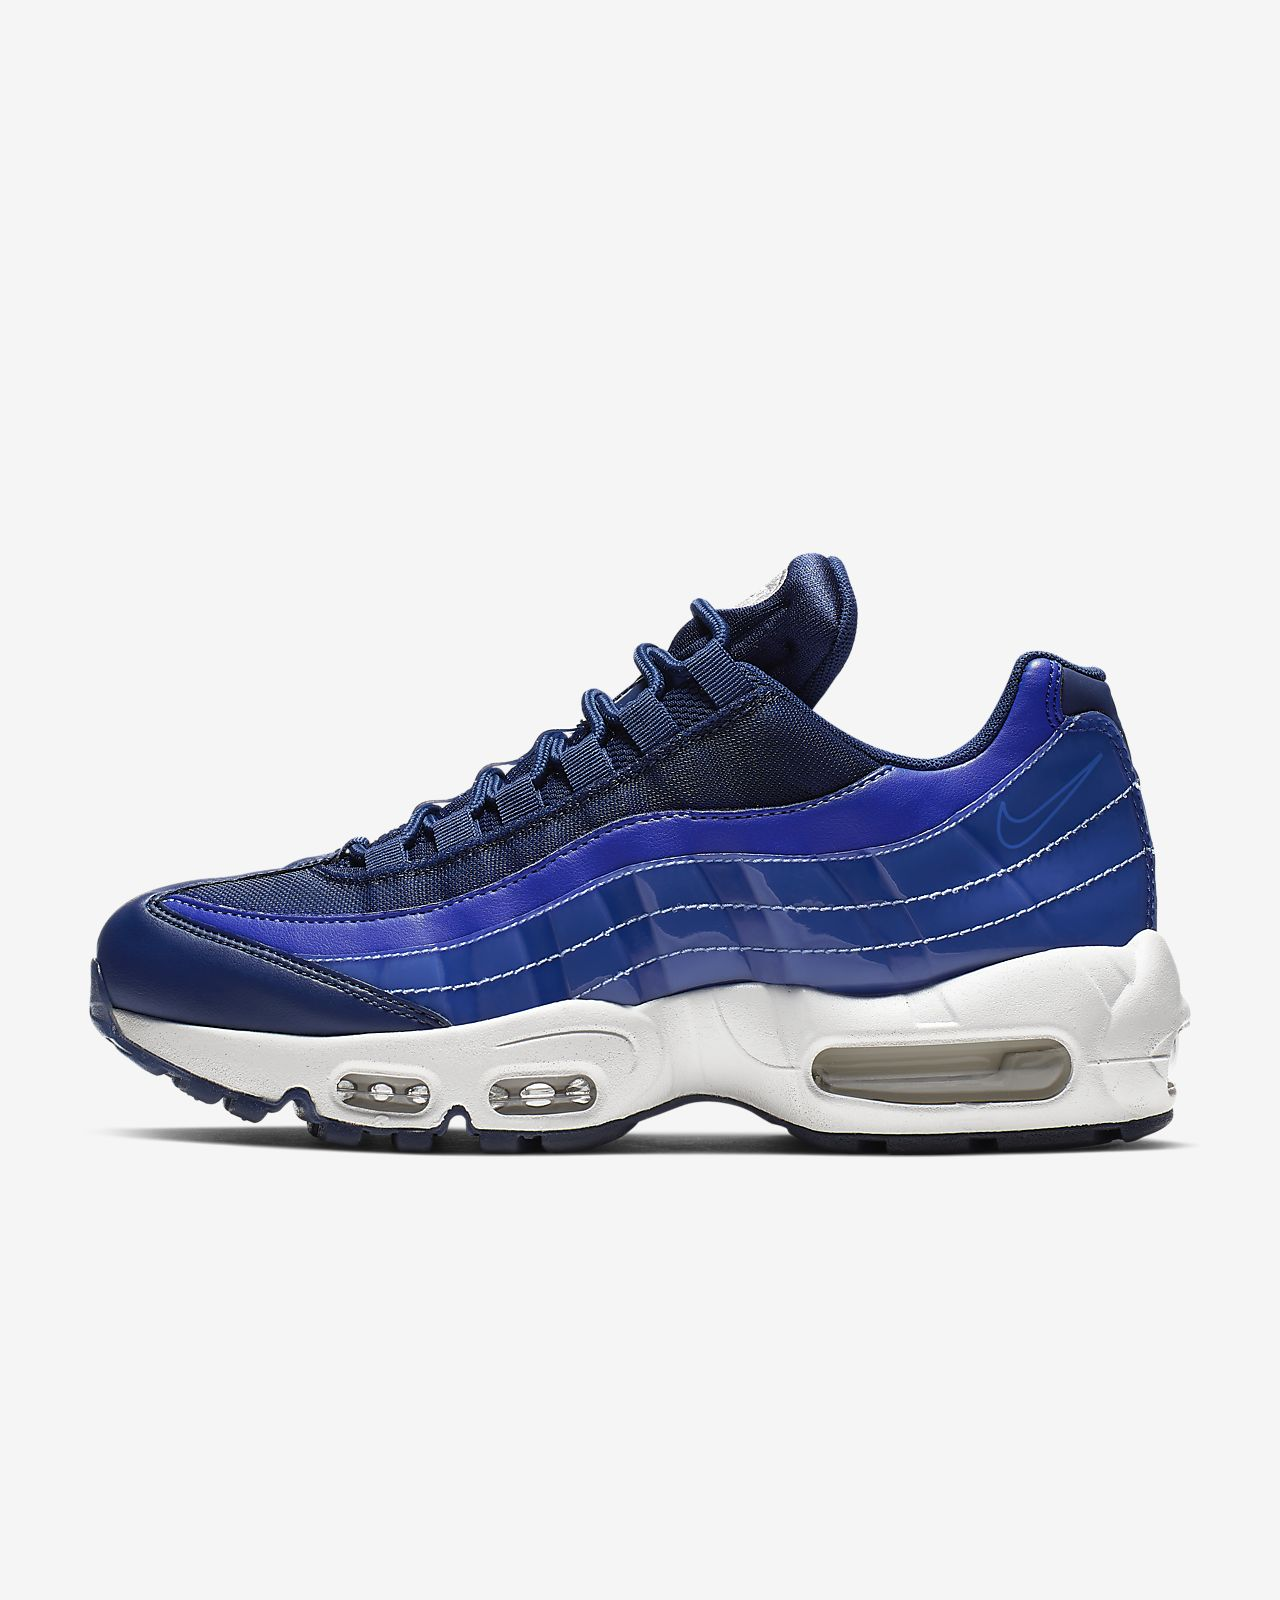 new style a5297 7f6a3 ... Nike Air Max 95 SE Women s Shoe